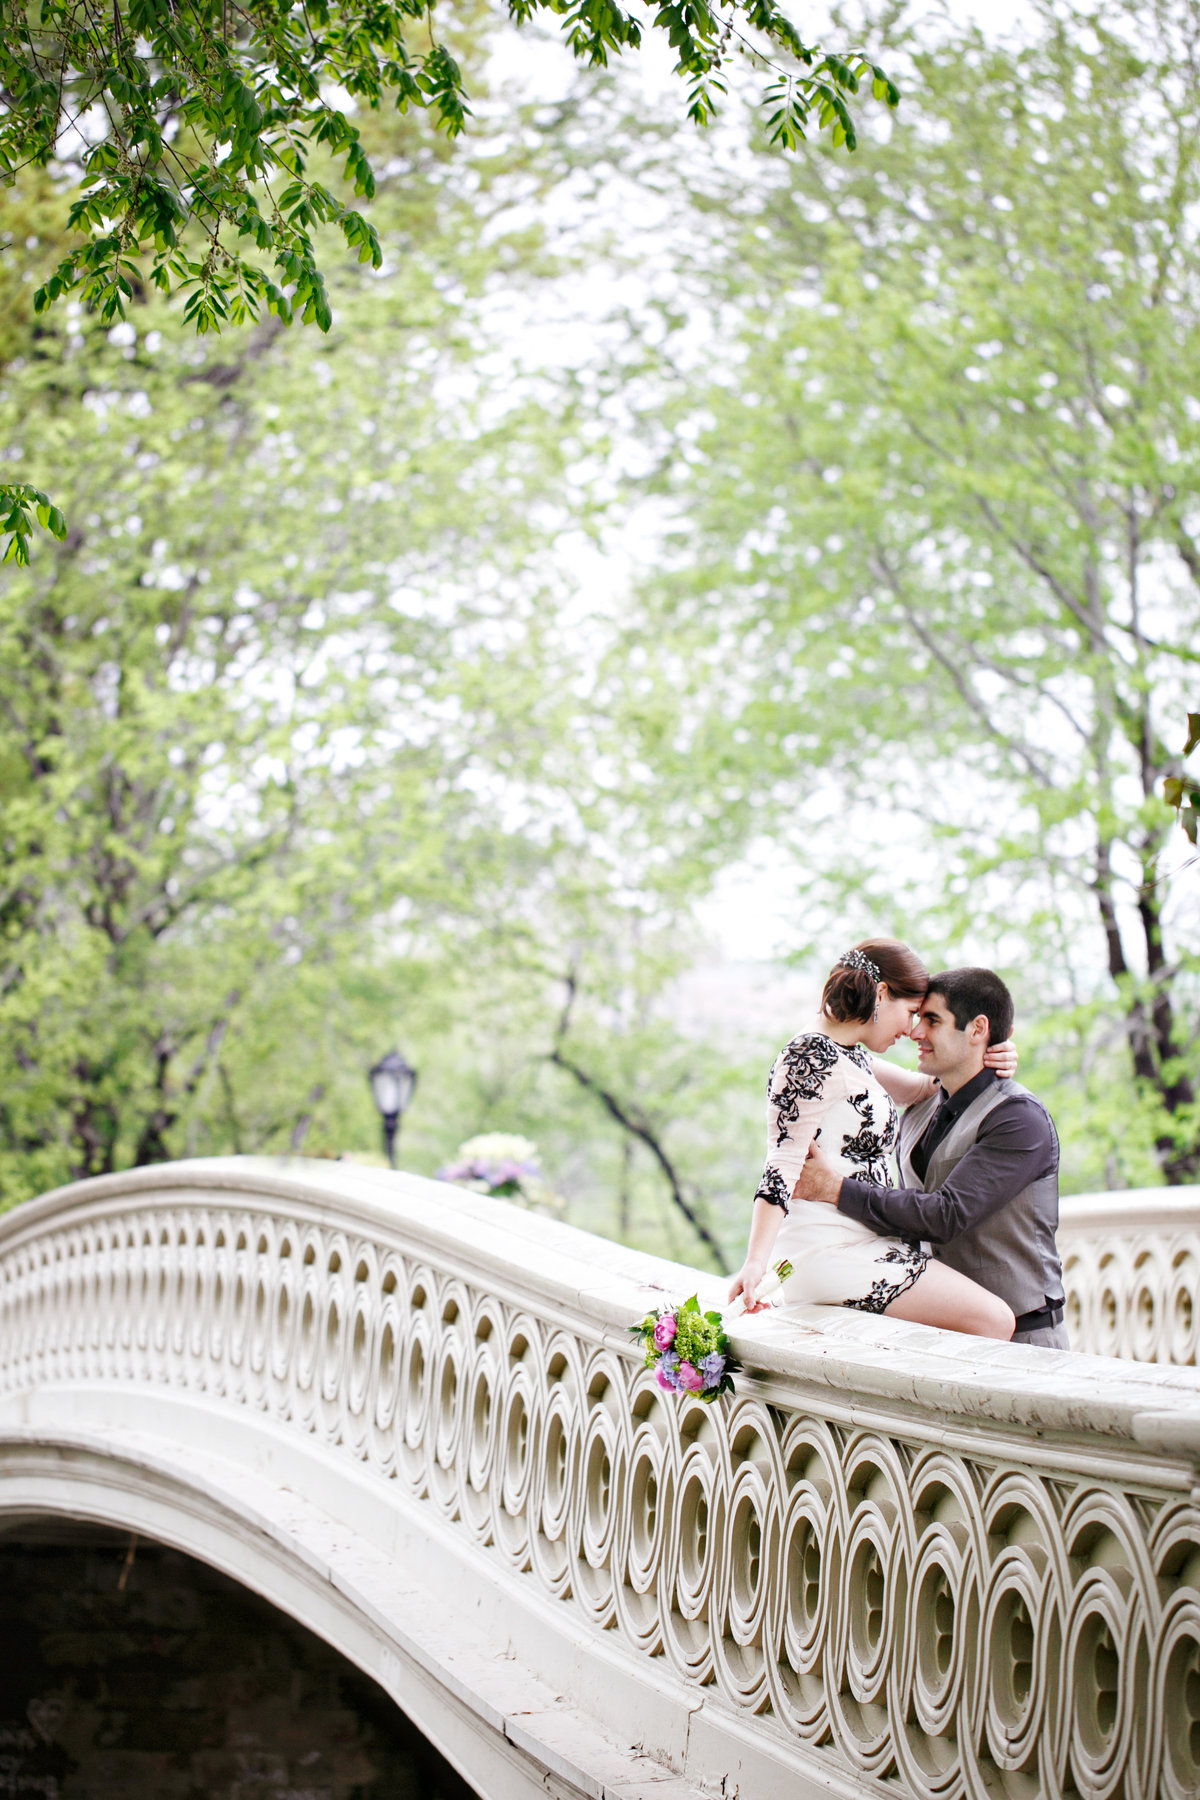 AmyAnaiz__Intimate_Elopement_Central_Park_Mantattan_New_York022